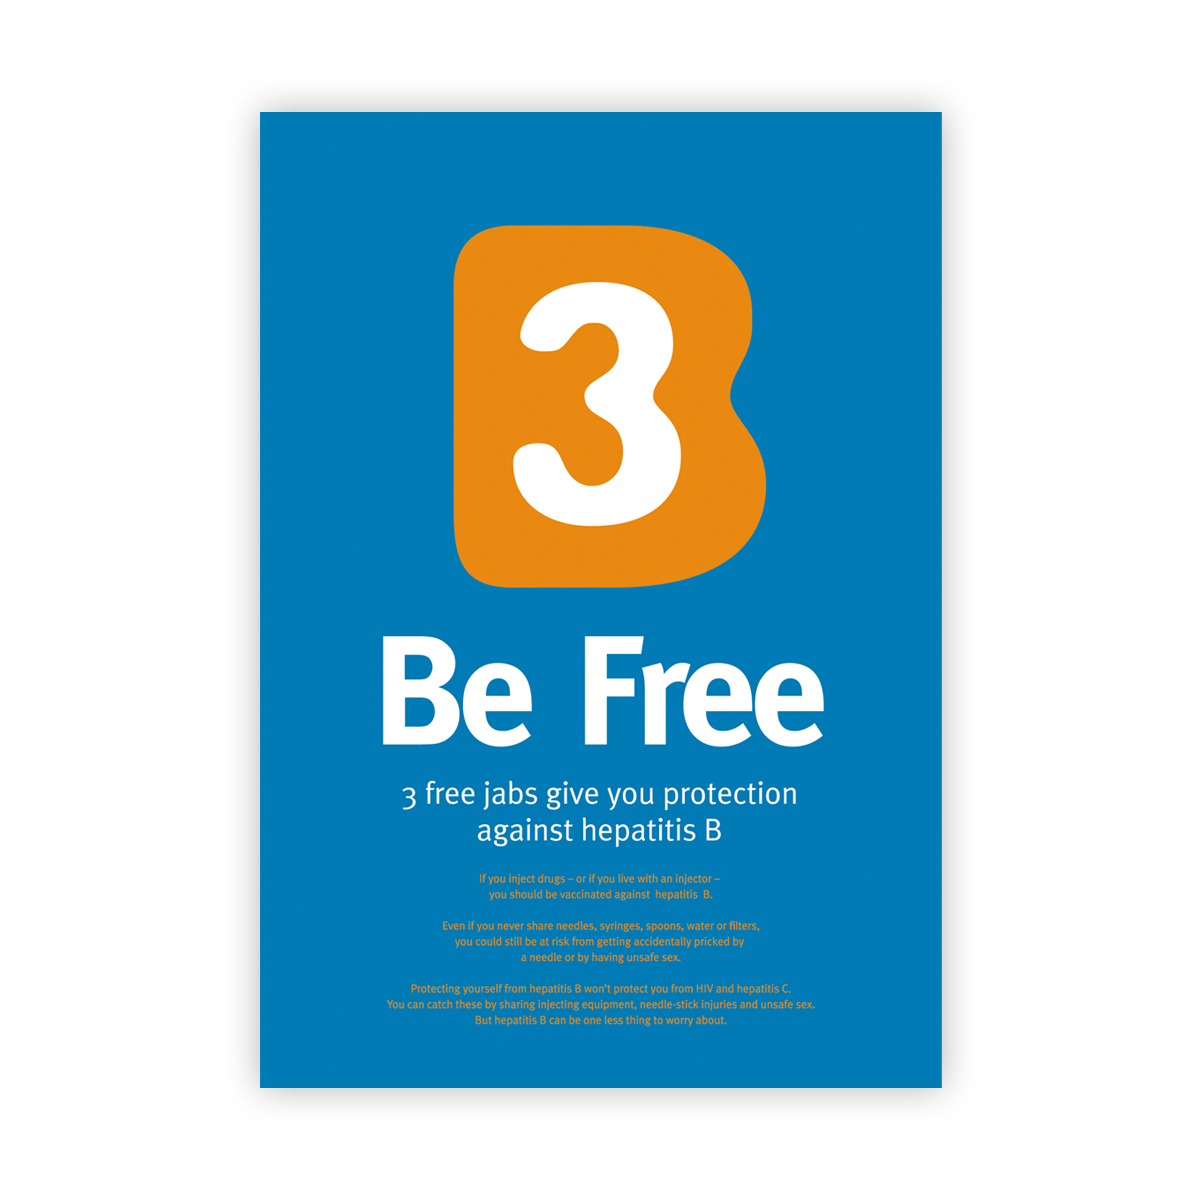 'B3 Be Free' campaign: poster (large)